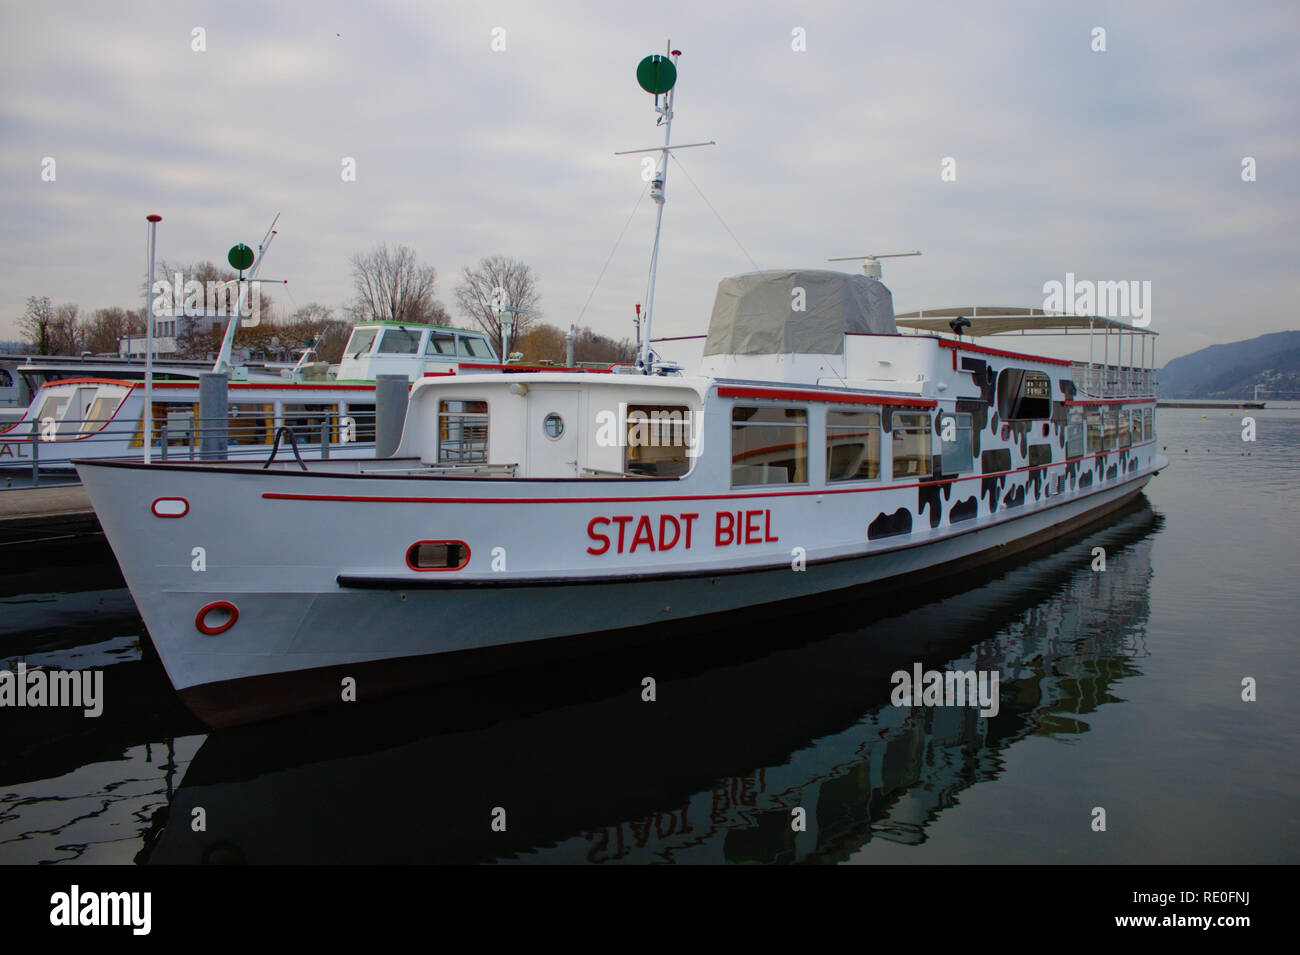 Passenger boat of Bielersee Schifffahrts Gesellschaft. Stadt Biel. Laying at the harbor of Biel during winter. - Stock Image